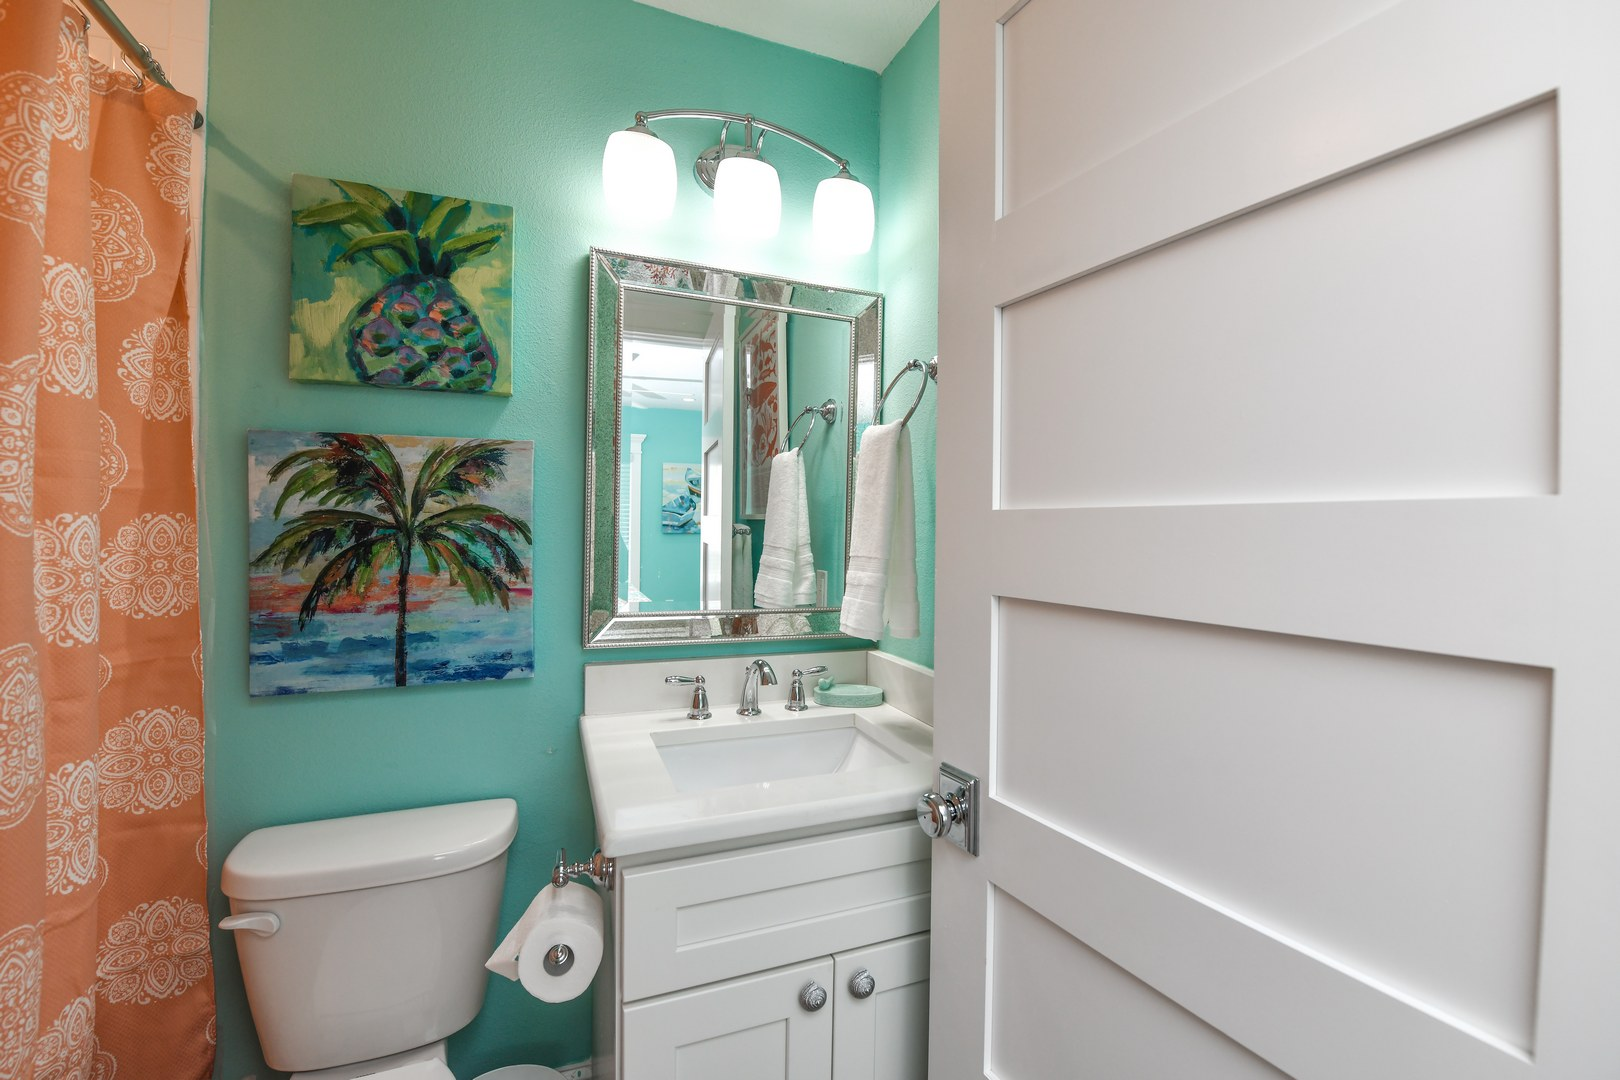 Master Bathroom - Vanity and Commode